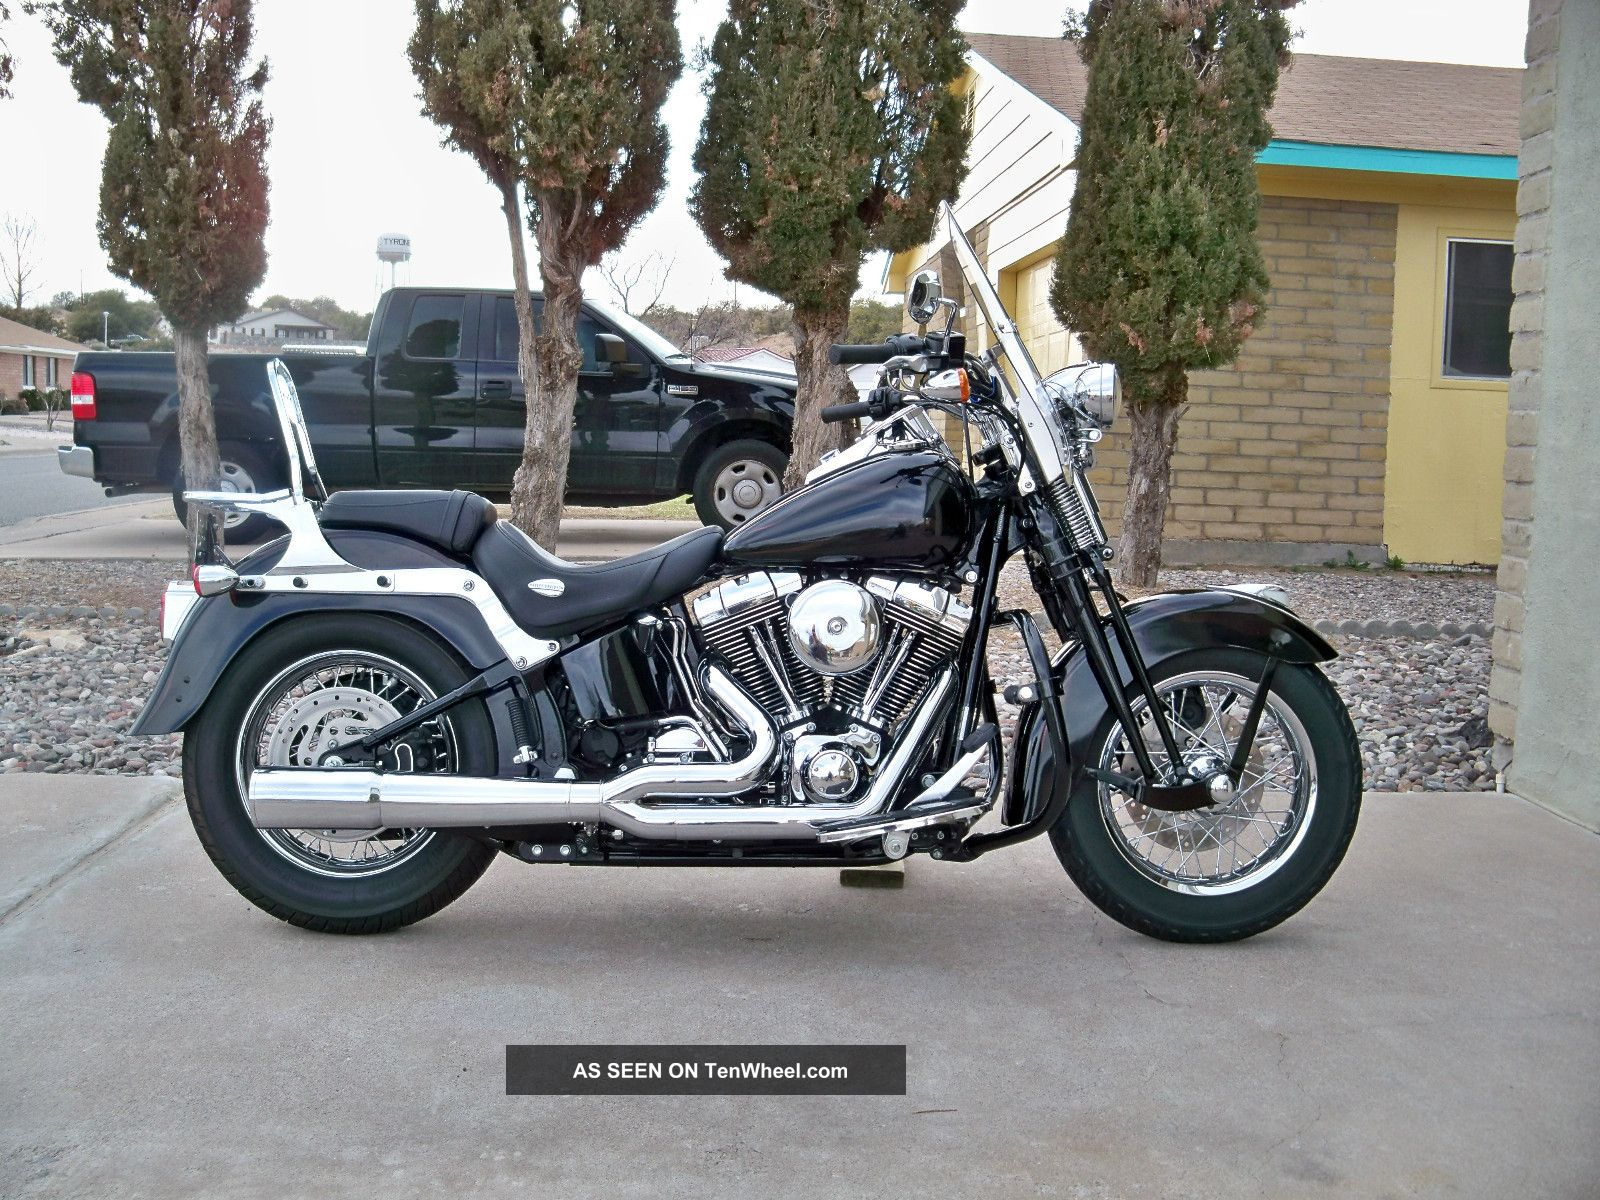 v star 1100 tail with 15197 2005 Harley   Davidson Softail Springer Classic Flstsci on 201437186818 together with Au in addition Yamaha xvs1100 D 20S 20C 2000 moreover Yamaha V Star 650 Bobber Tail End Customs besides Motorcycle Wire Color Codes.